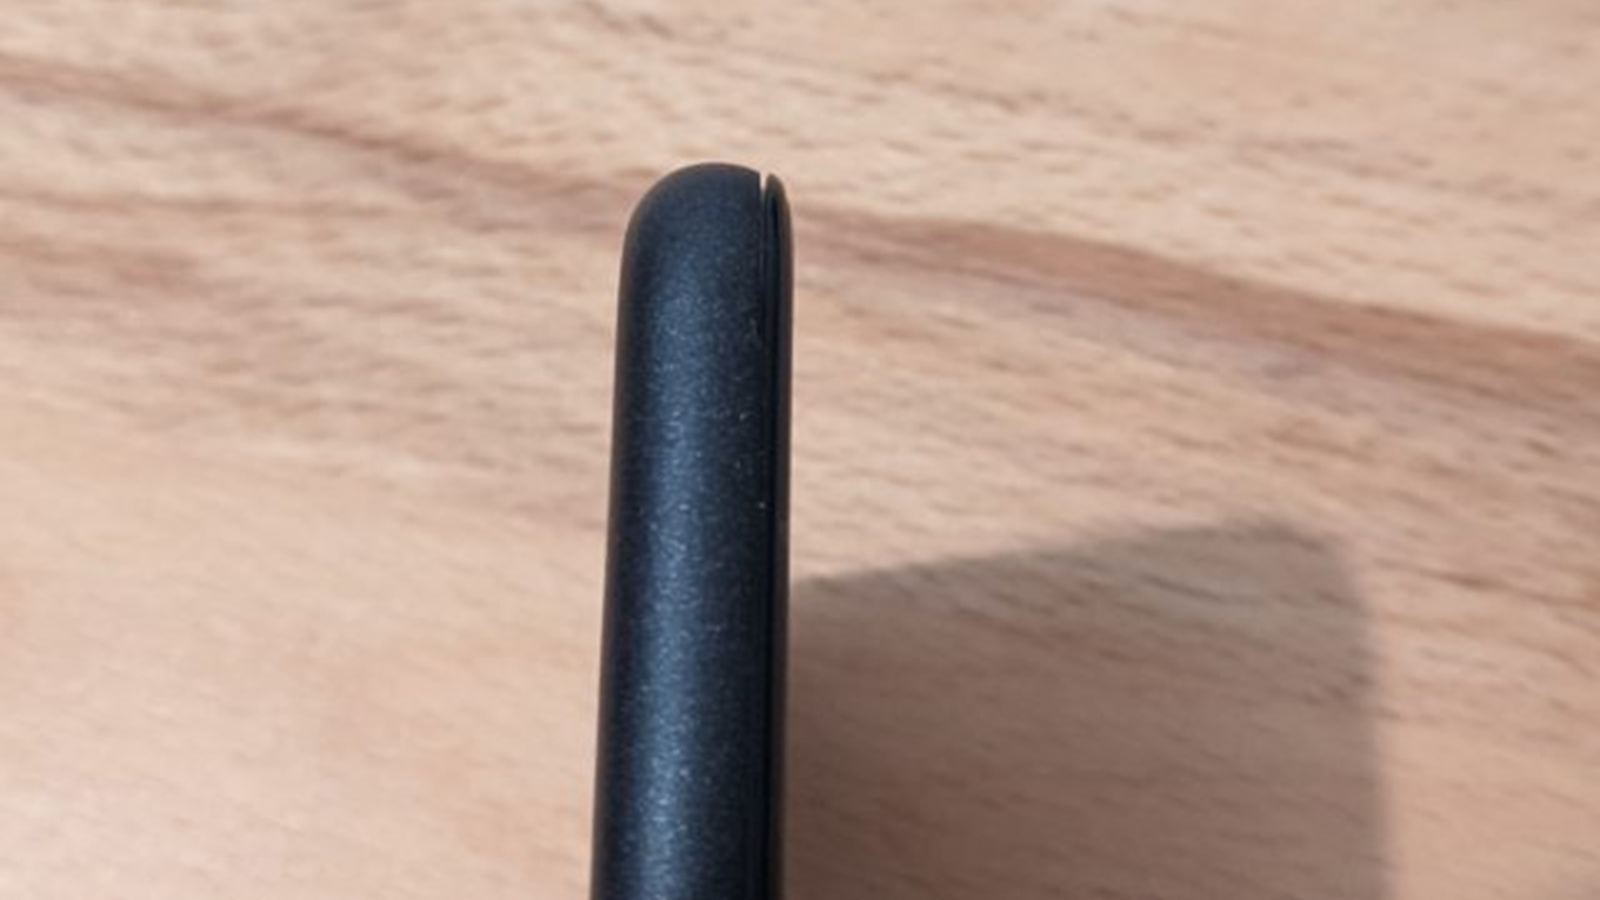 A closeup of a Pixel 5 with a small gap in the screen connection to the phone.